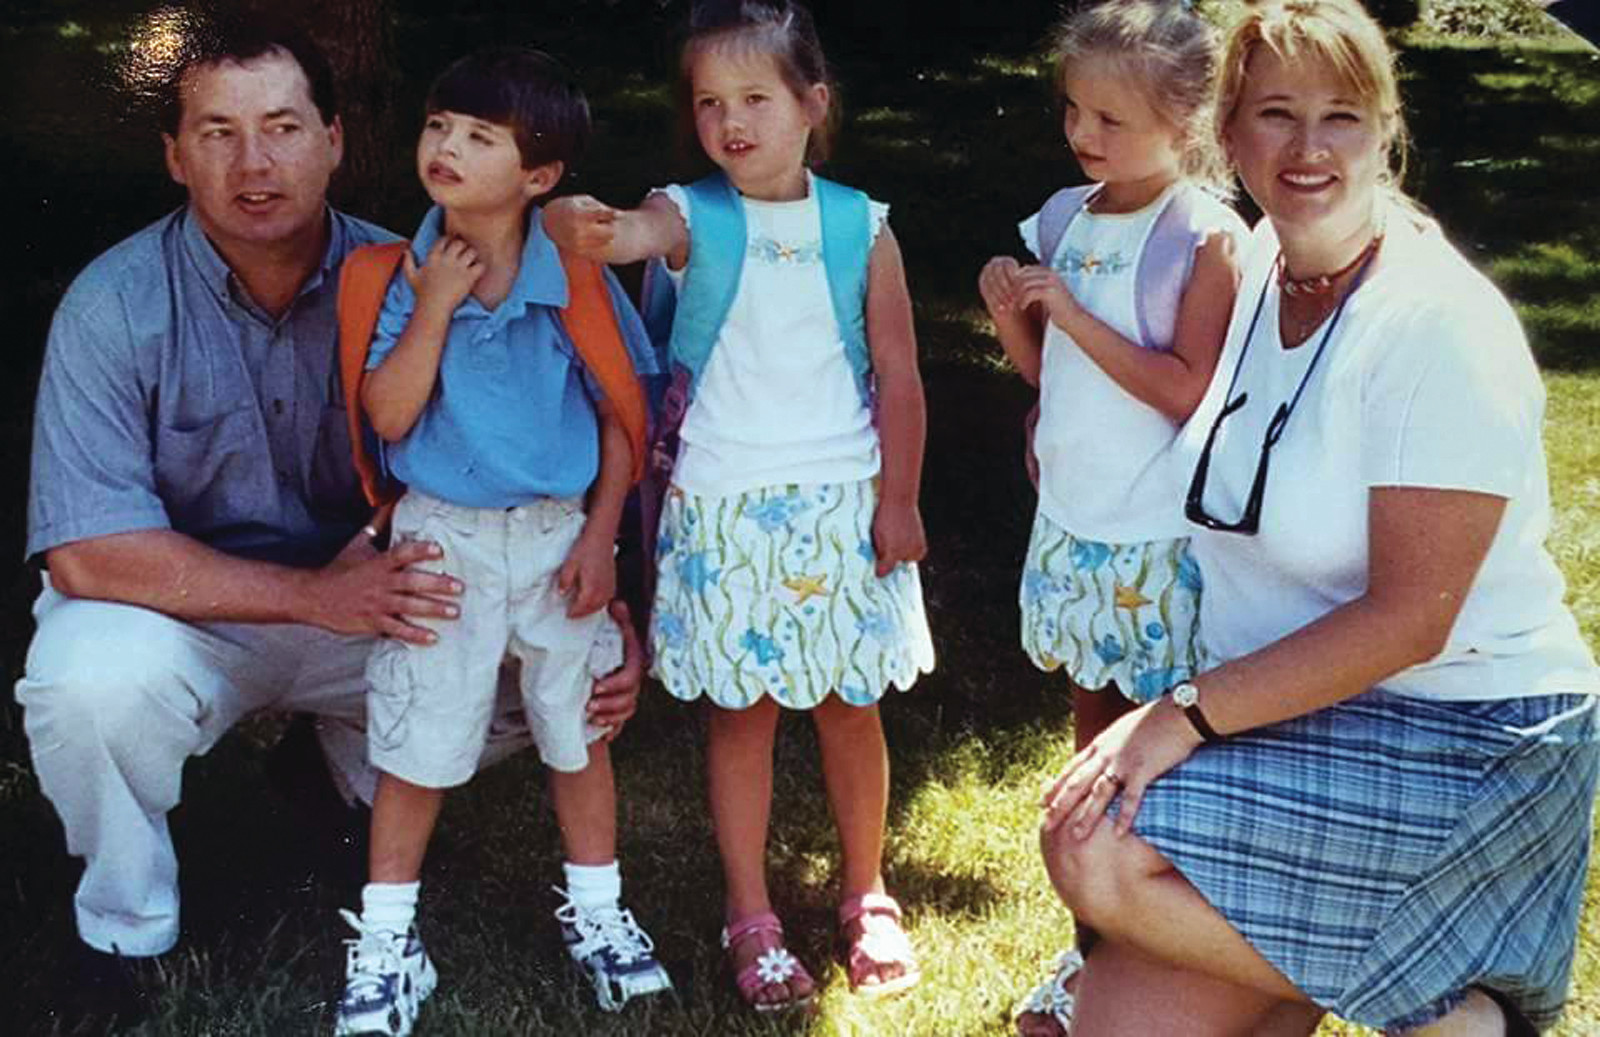 A BLUR: At left, Steve and Sue Marchetti pose proudly with their children, Ryan, Jordan and Allison as they head off to their first day of school.